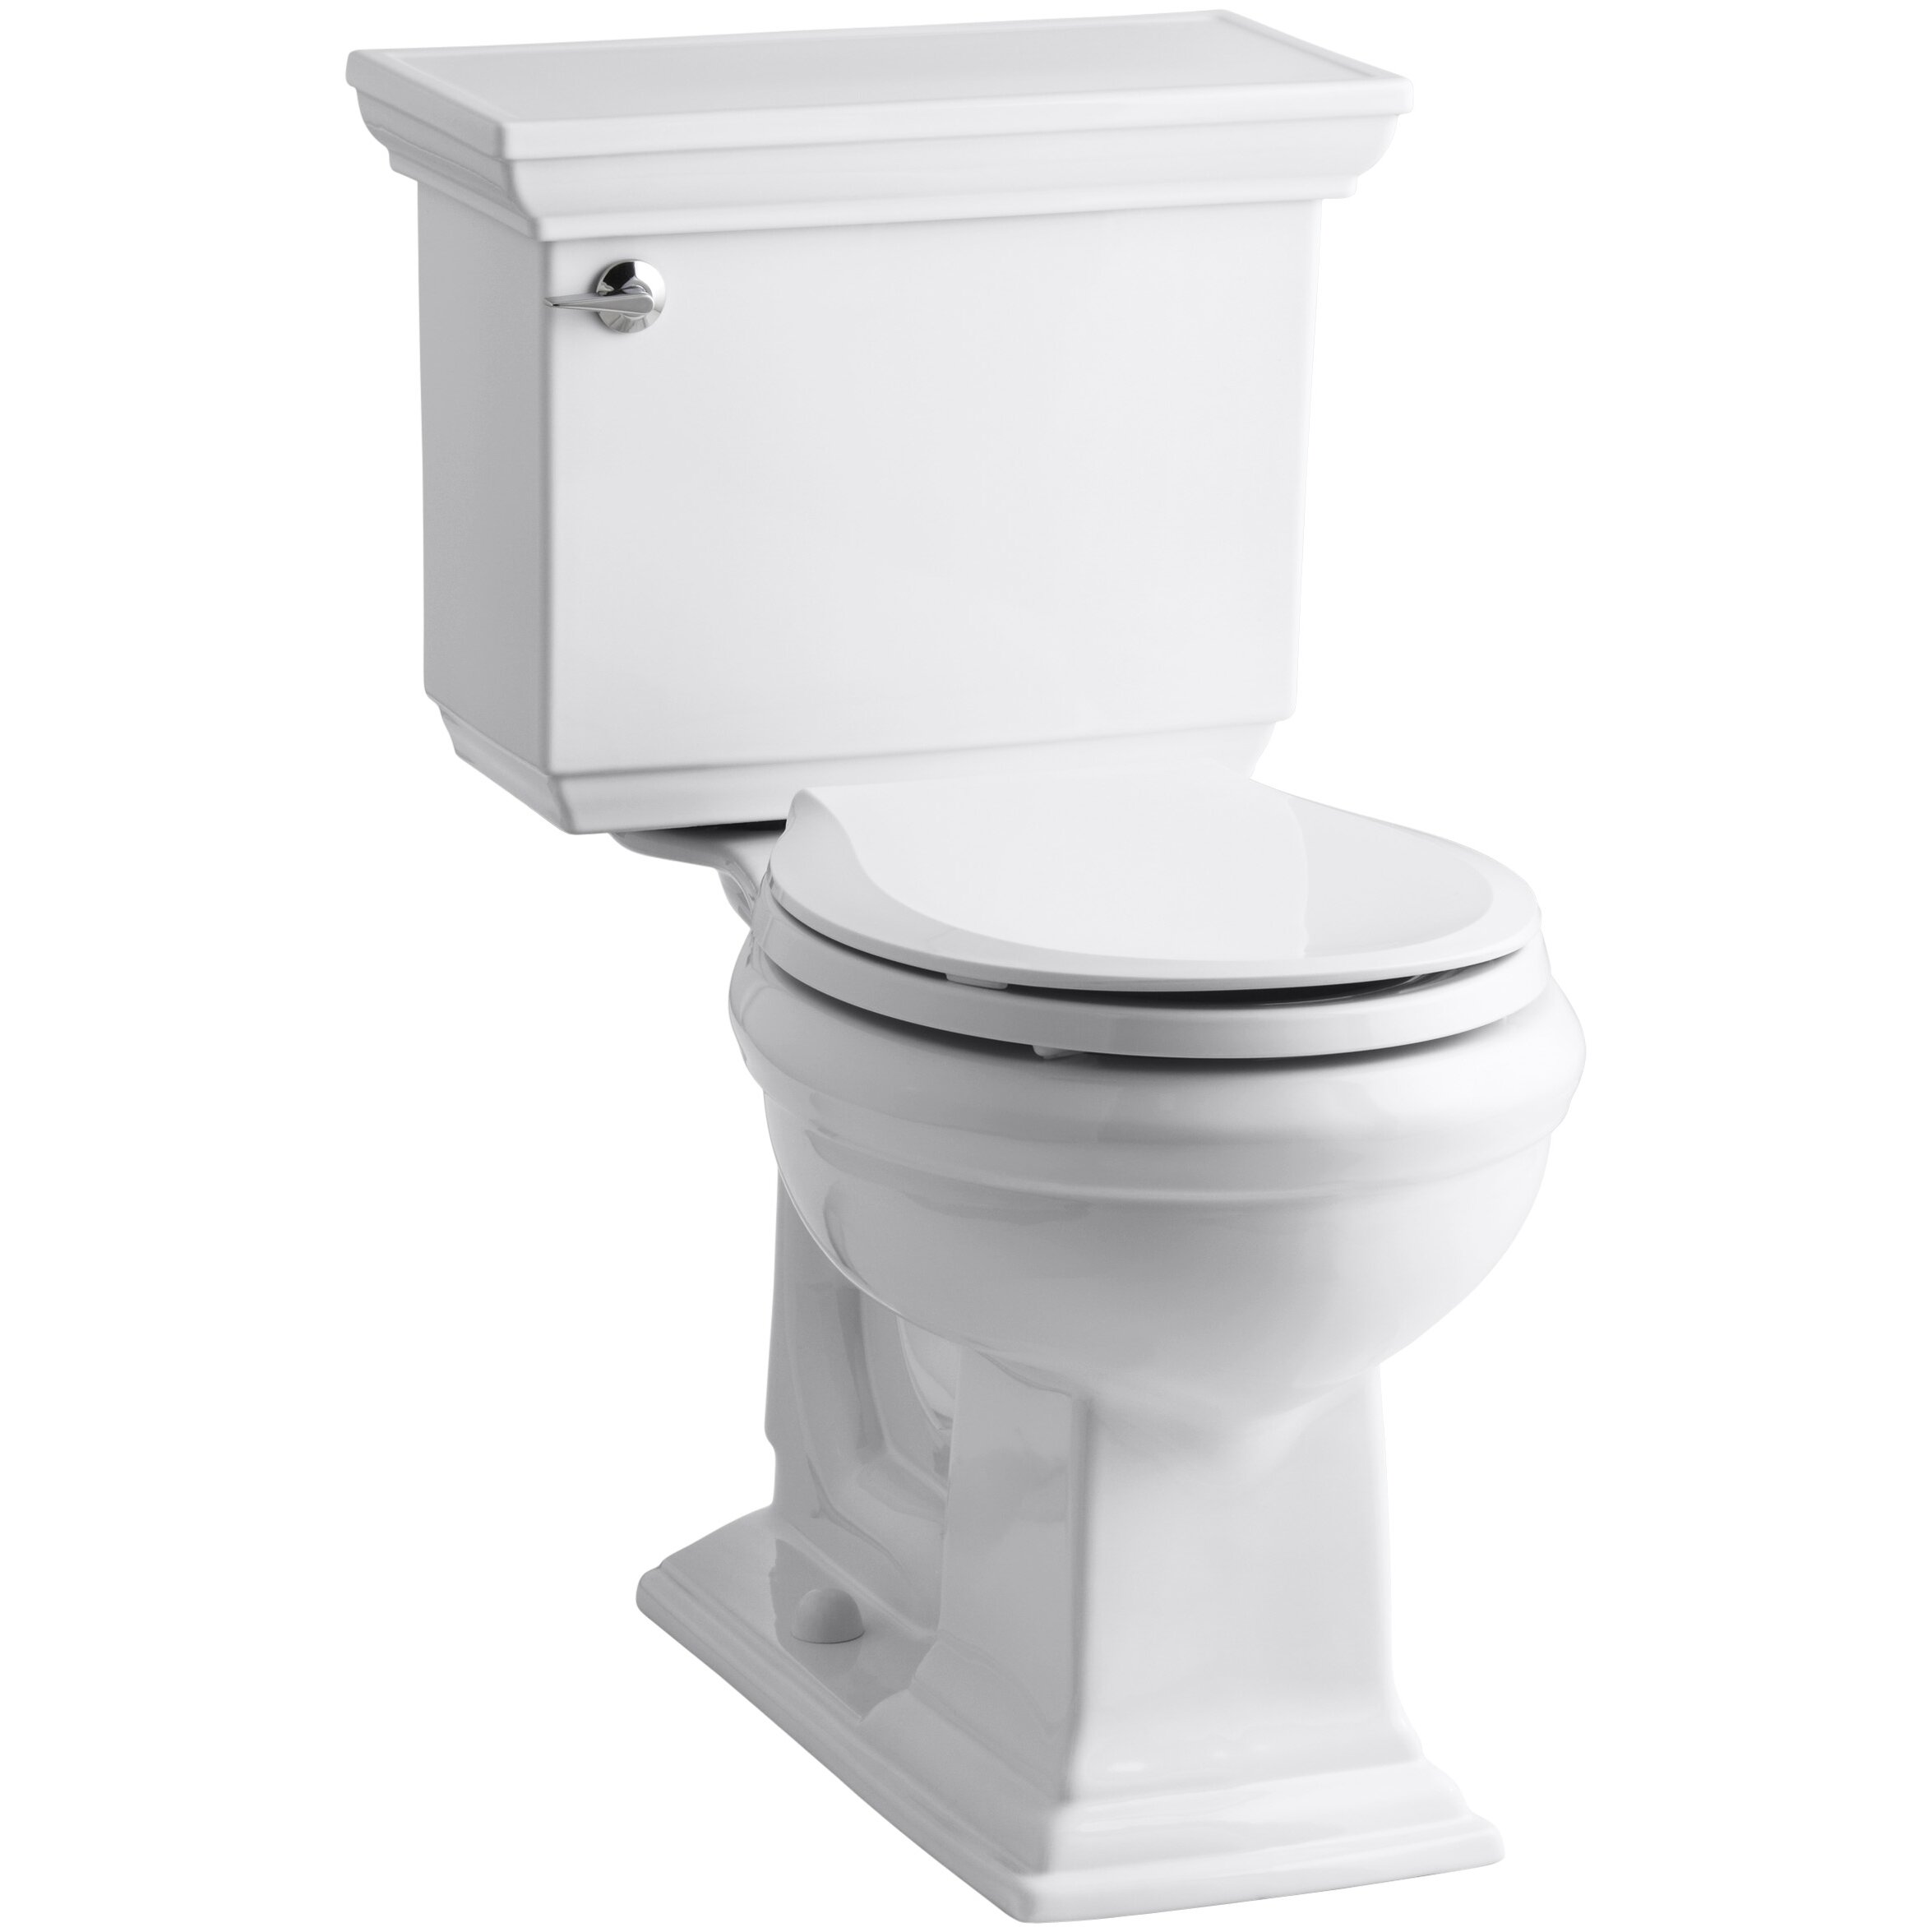 Cheap Kohler Toilets : Remodel Toilets, Bidets & Urinals Toilets Kohler Part #: K-3933 SKU ...